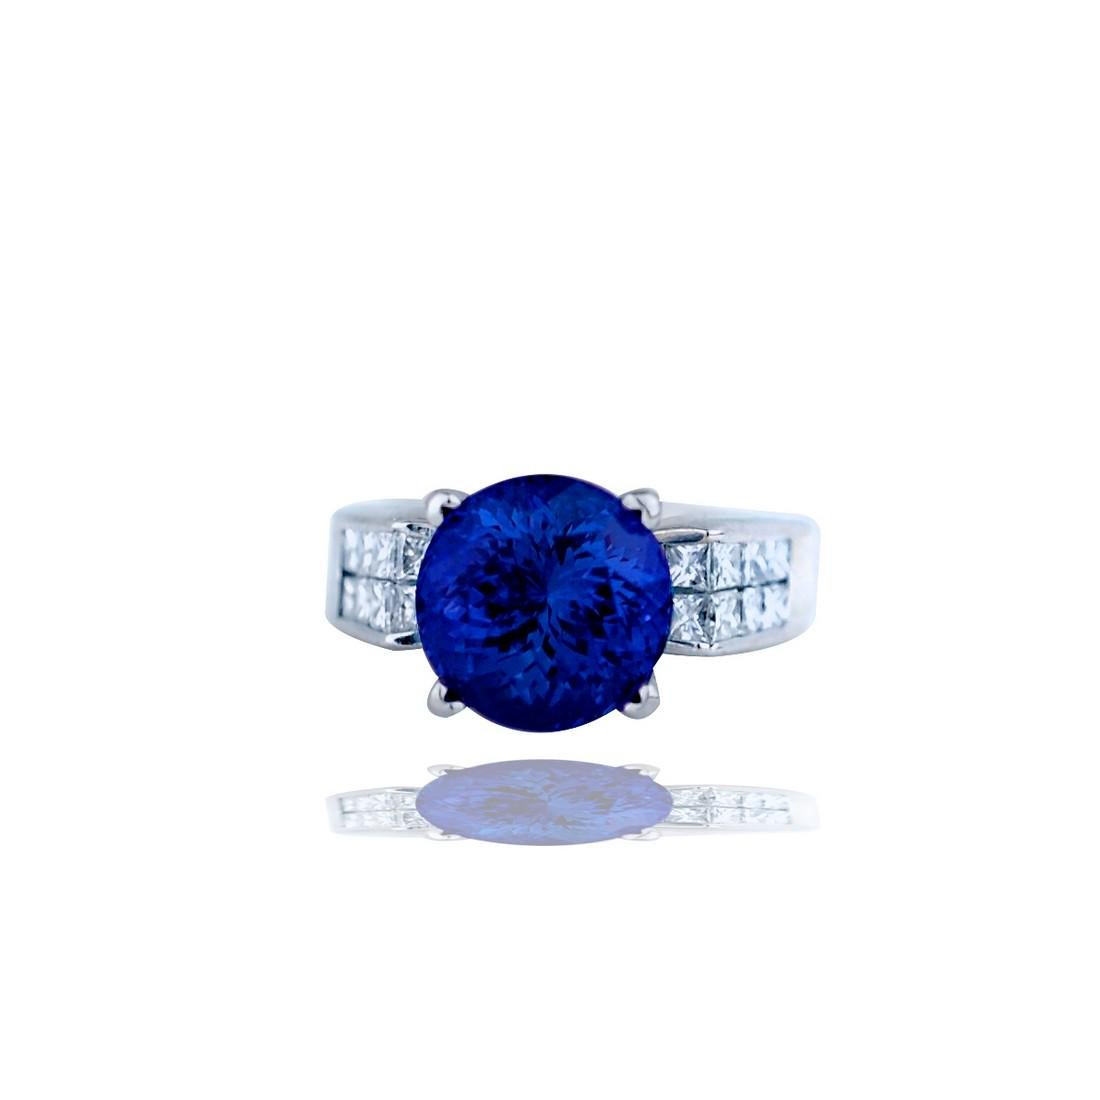 Contemporary,  5.81 TCW, Invisible Diamond Ring with